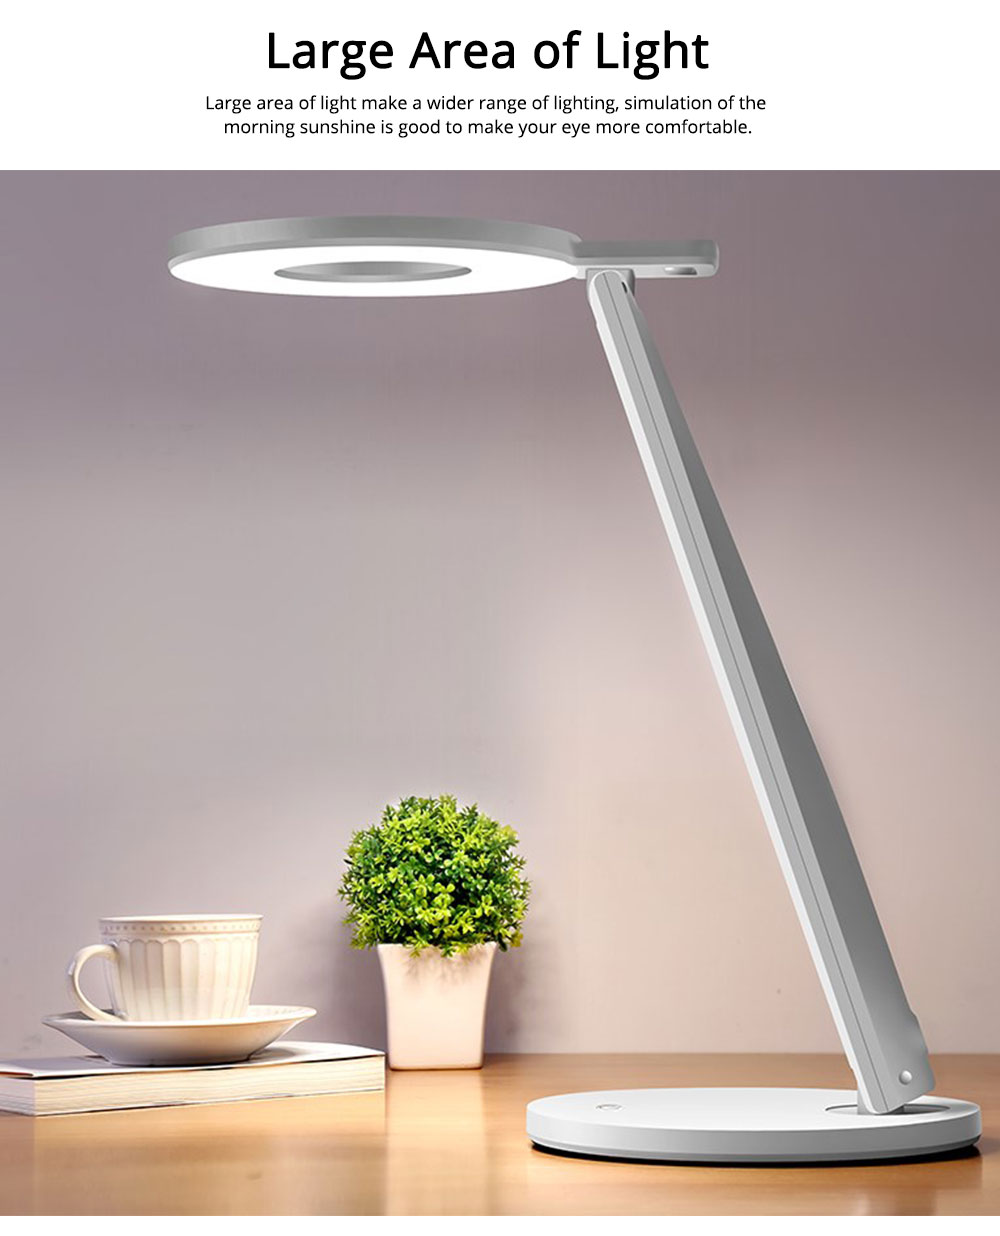 Led Desk Lamp ABS Material Adjustable Brightness Colors Large Light Area Touching Switch Light USB Rechargeable Folding Lamp 2